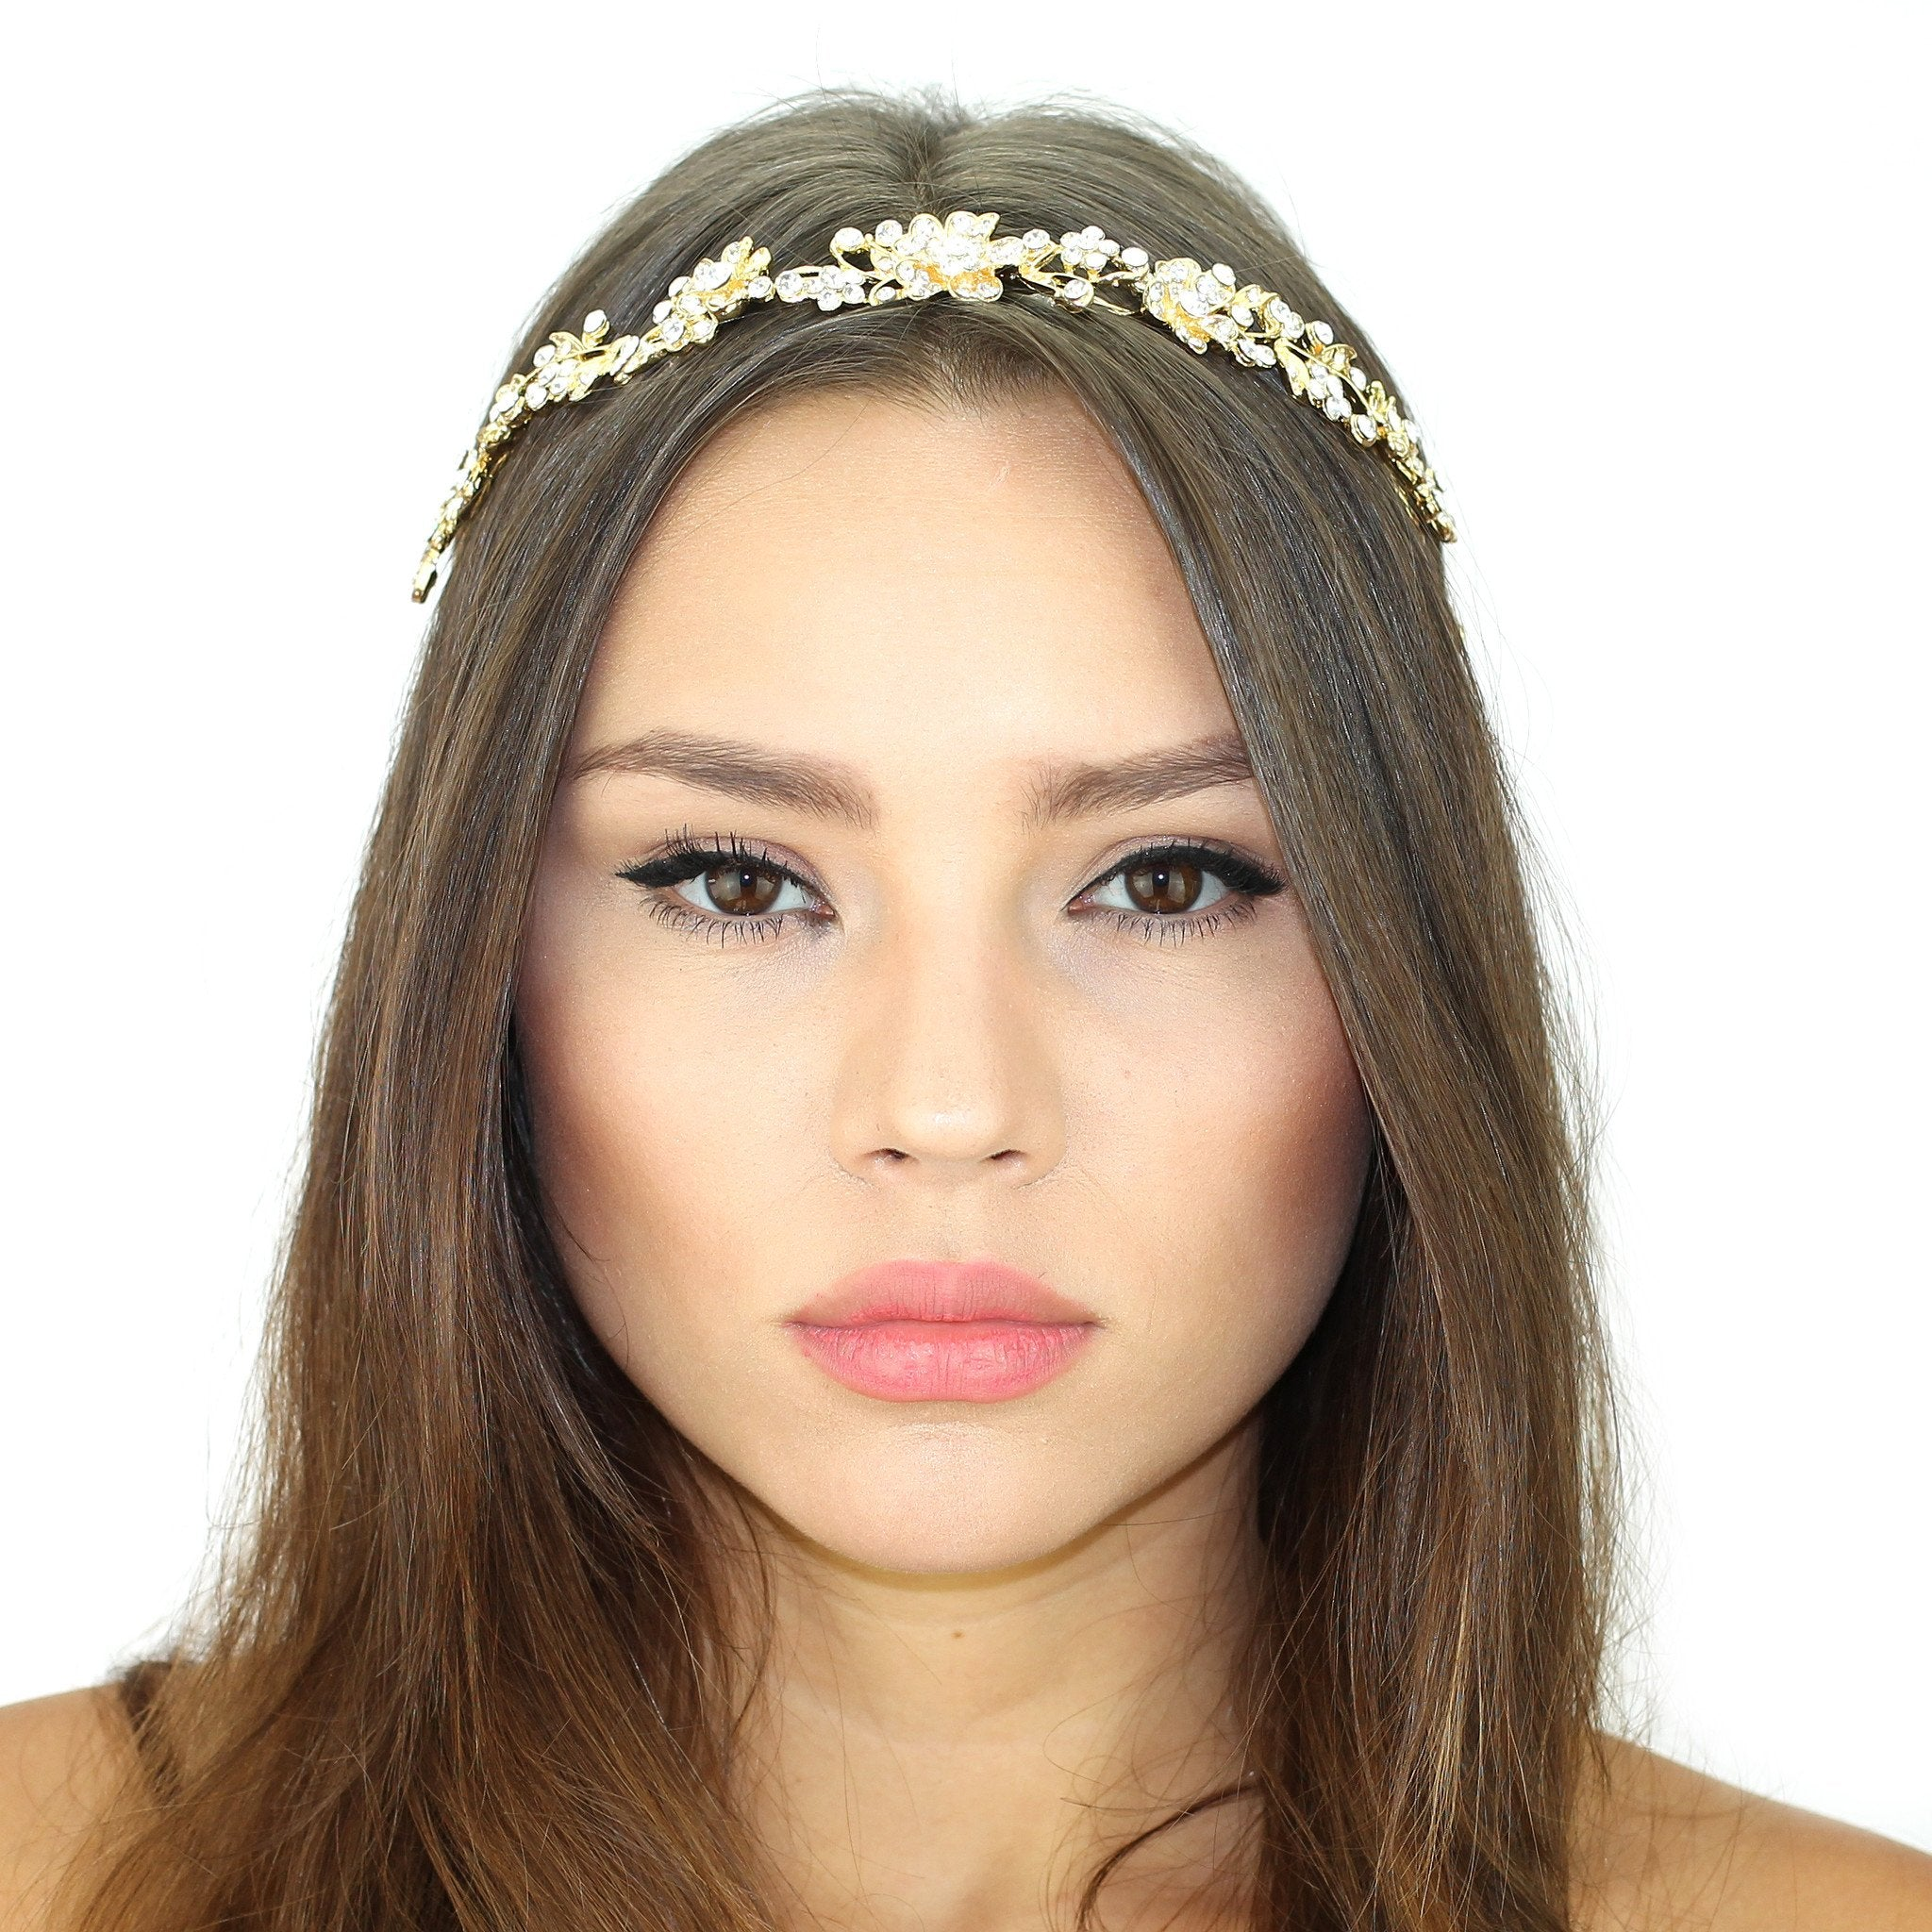 Crystal Vines Shimmer Headpiece